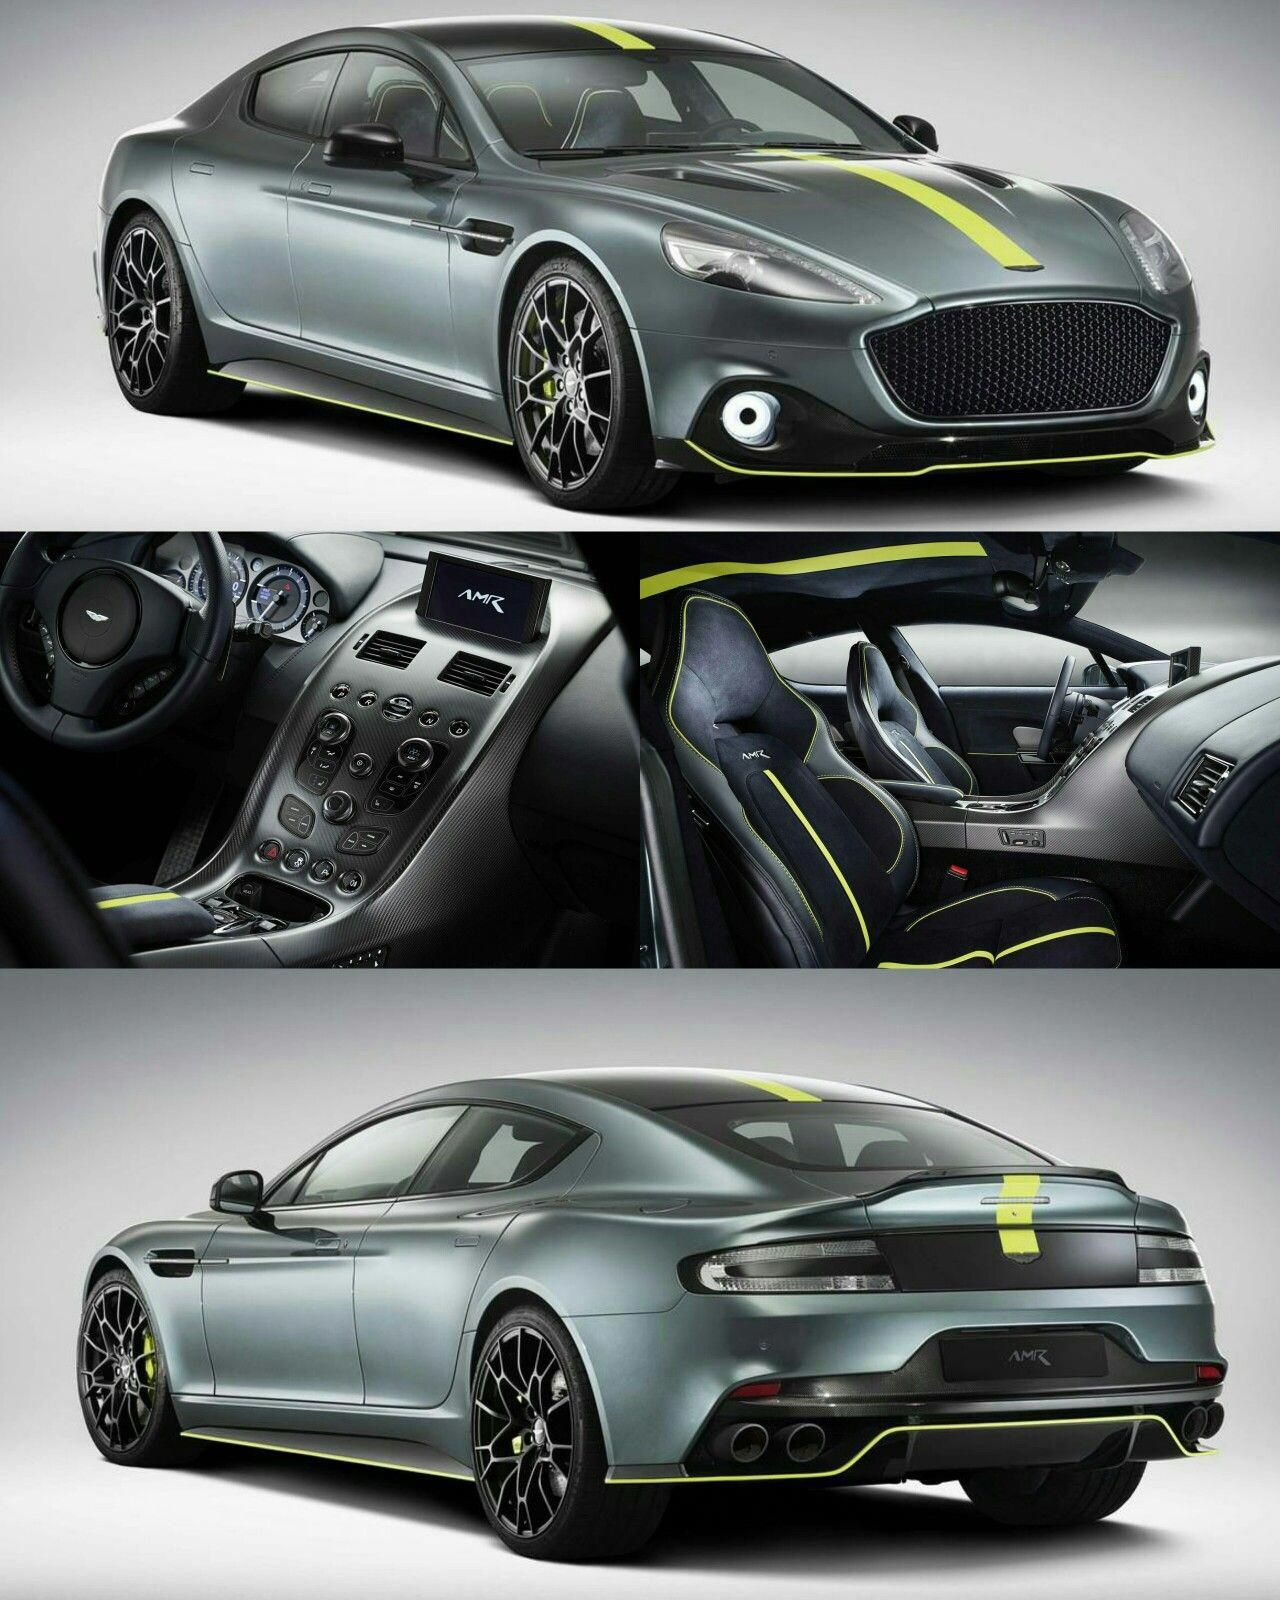 Aston Martin Rapide Amr Just 210 Cars Astonmartinrapide Aston Martin Rapide Aston Martin Acura Ilx